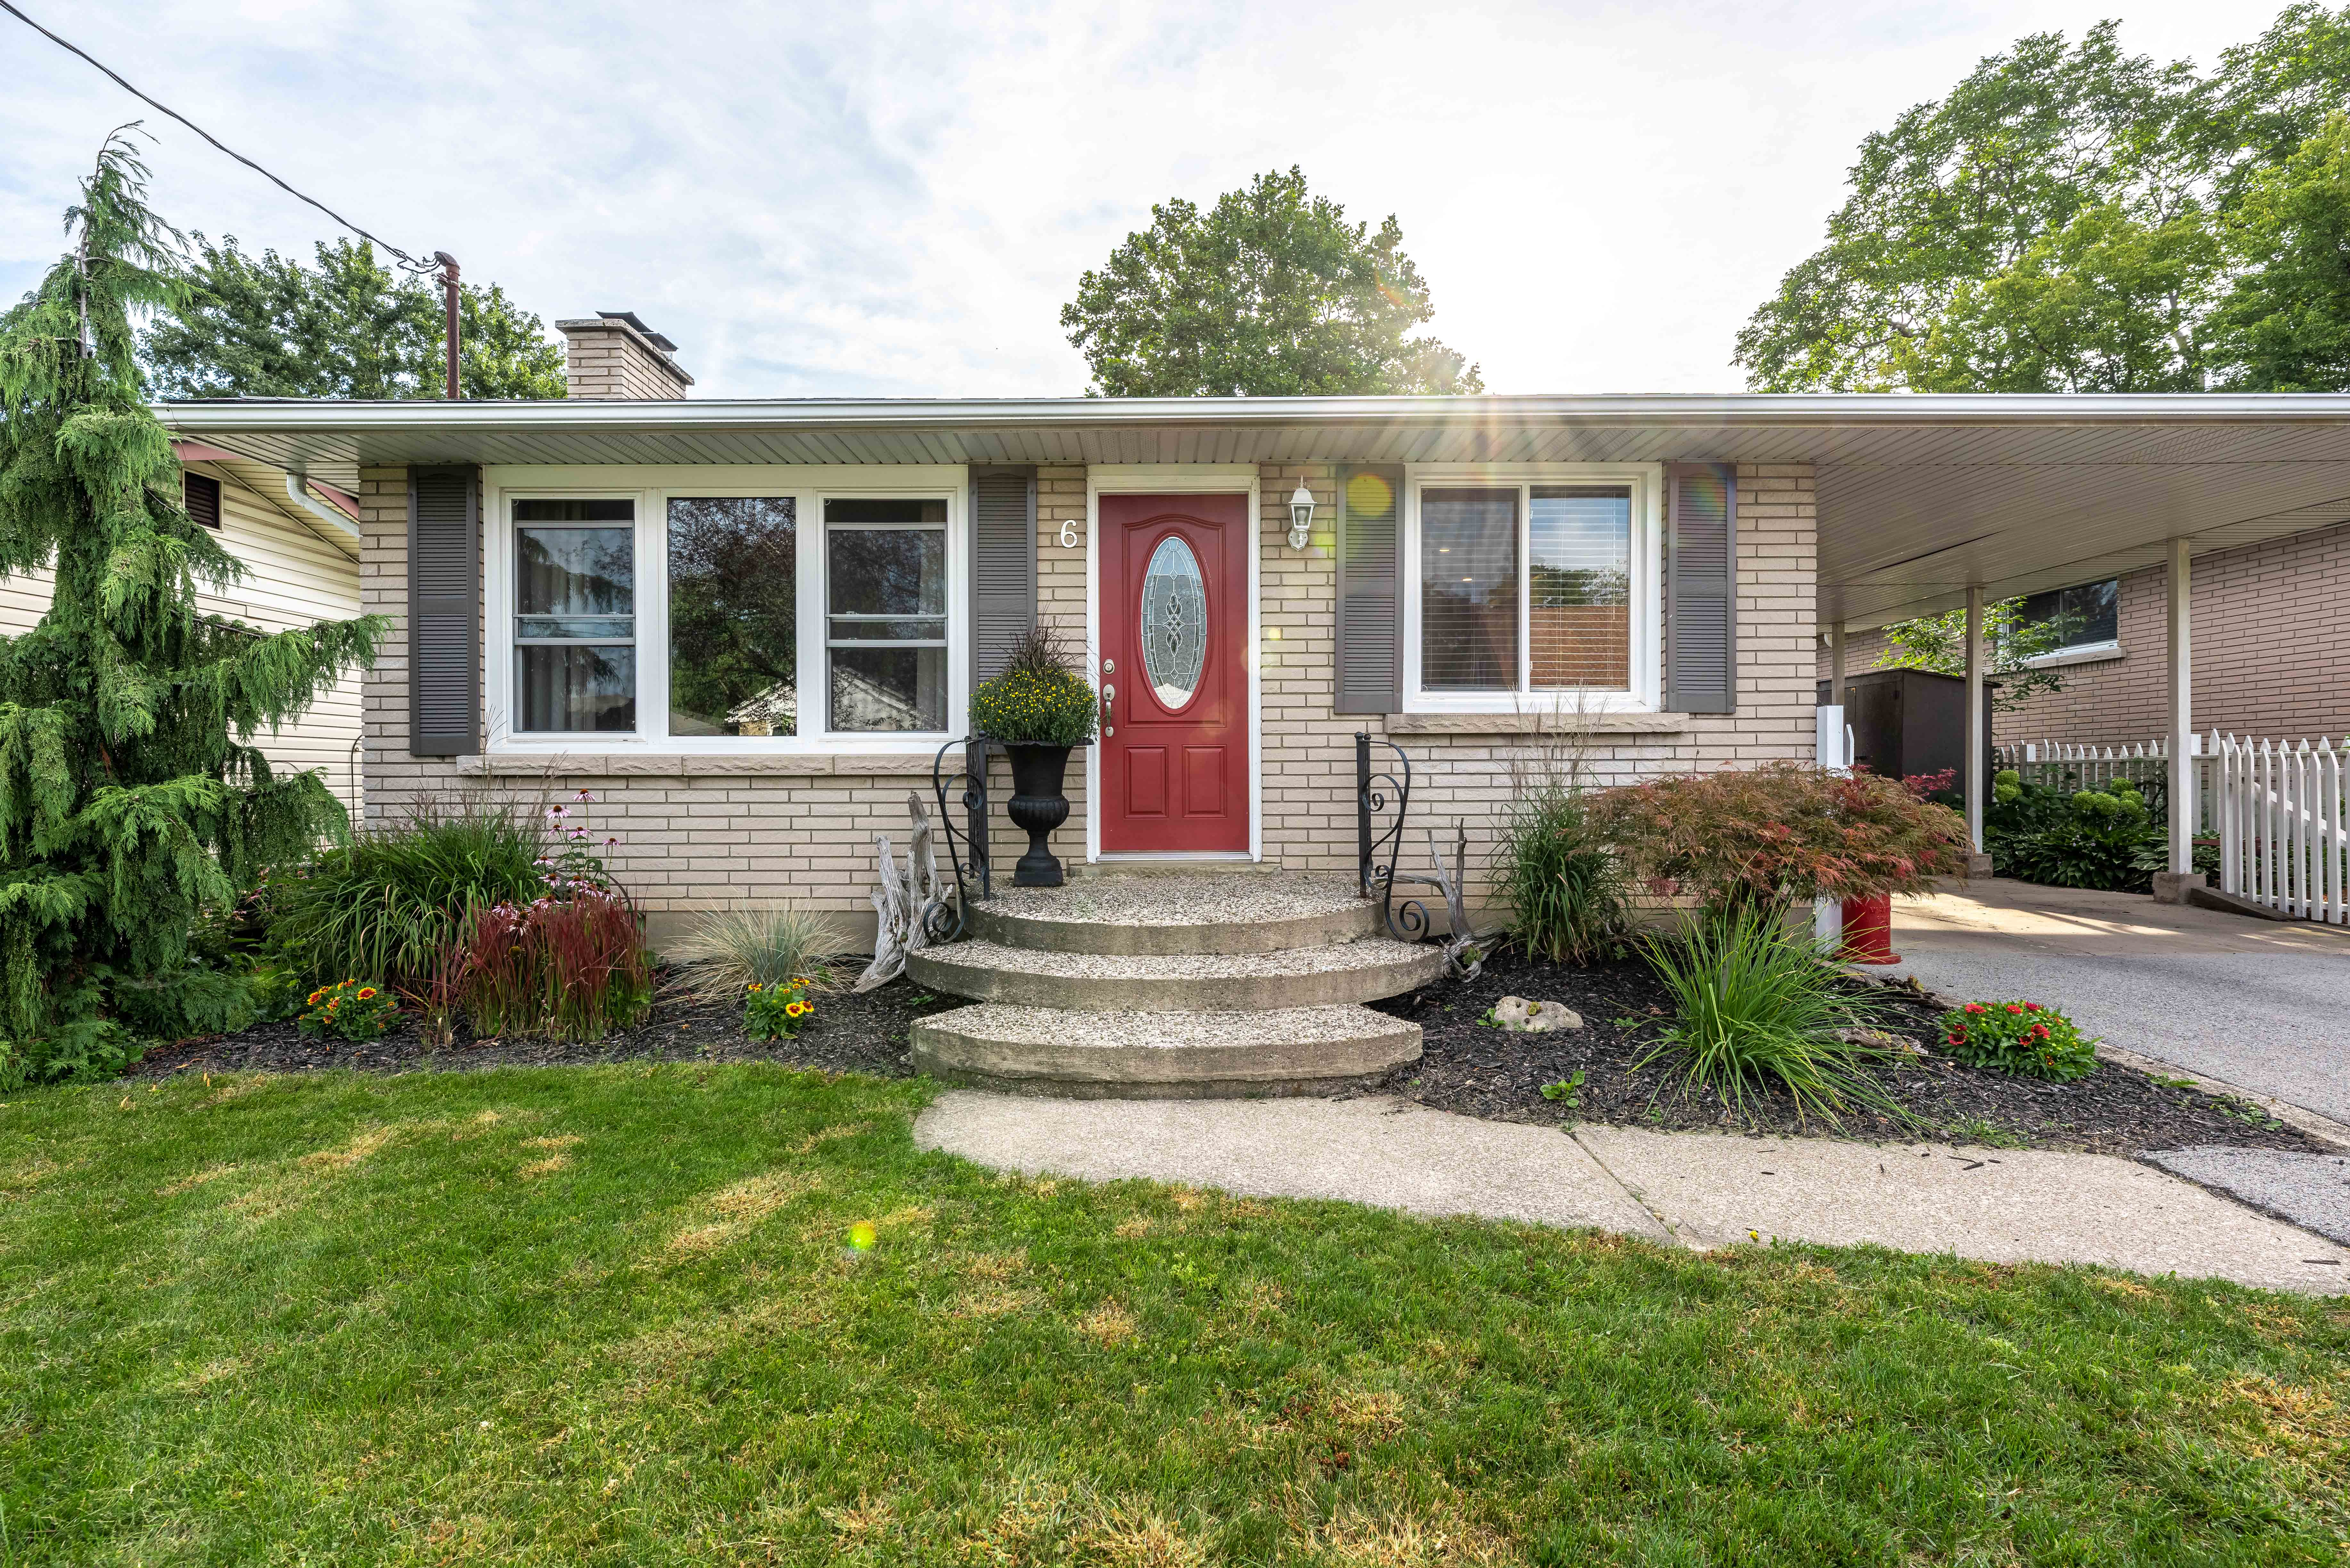 Property image for 6 Laird Drive, St. Catharines